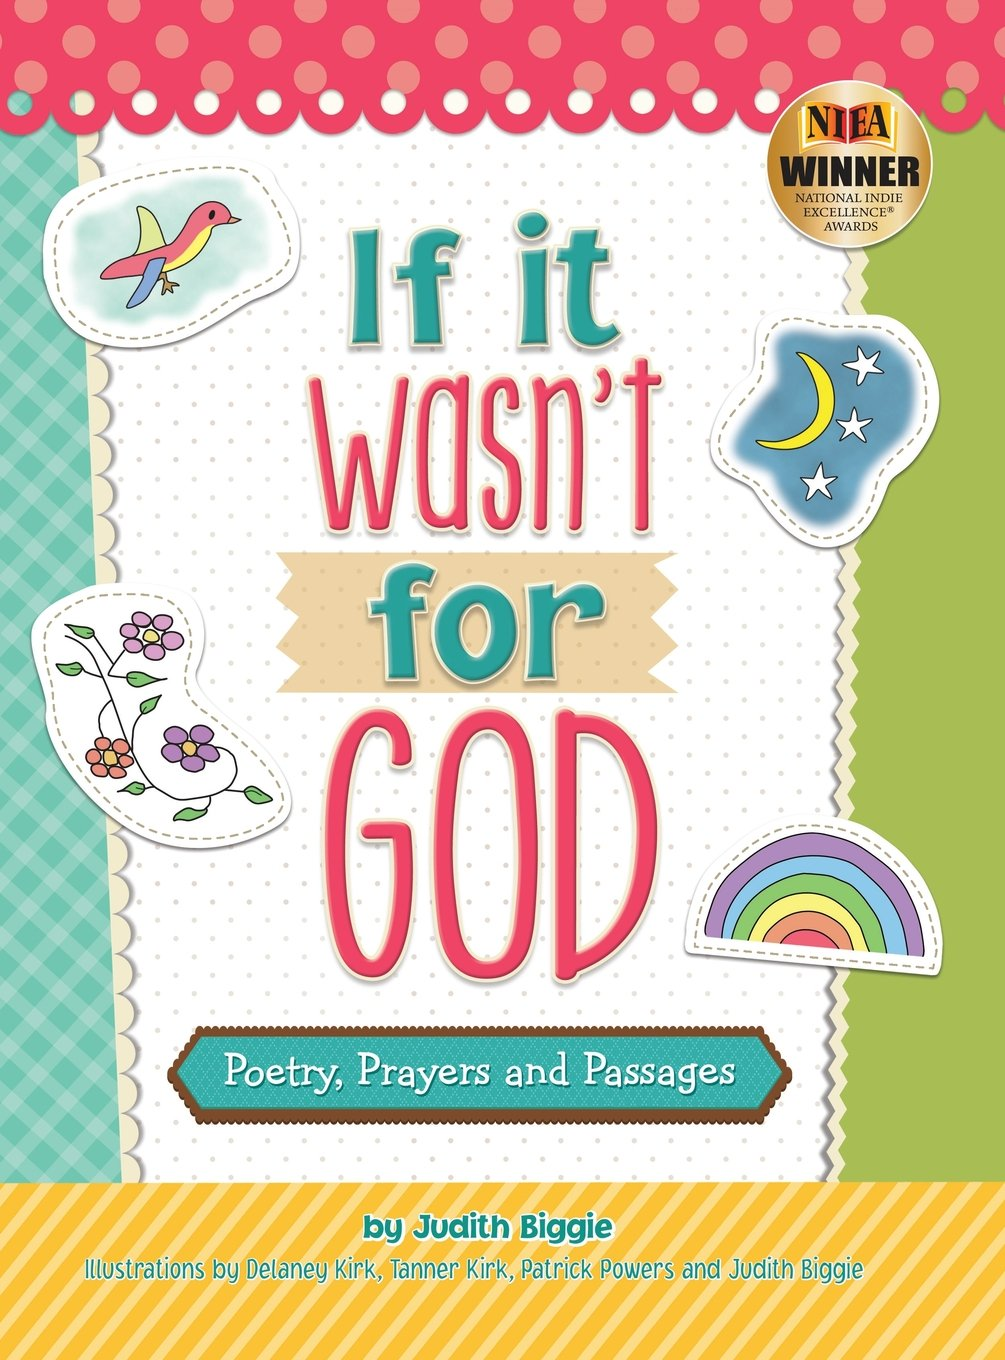 If It Wasn't for God: Poetry, Prayers and Passages